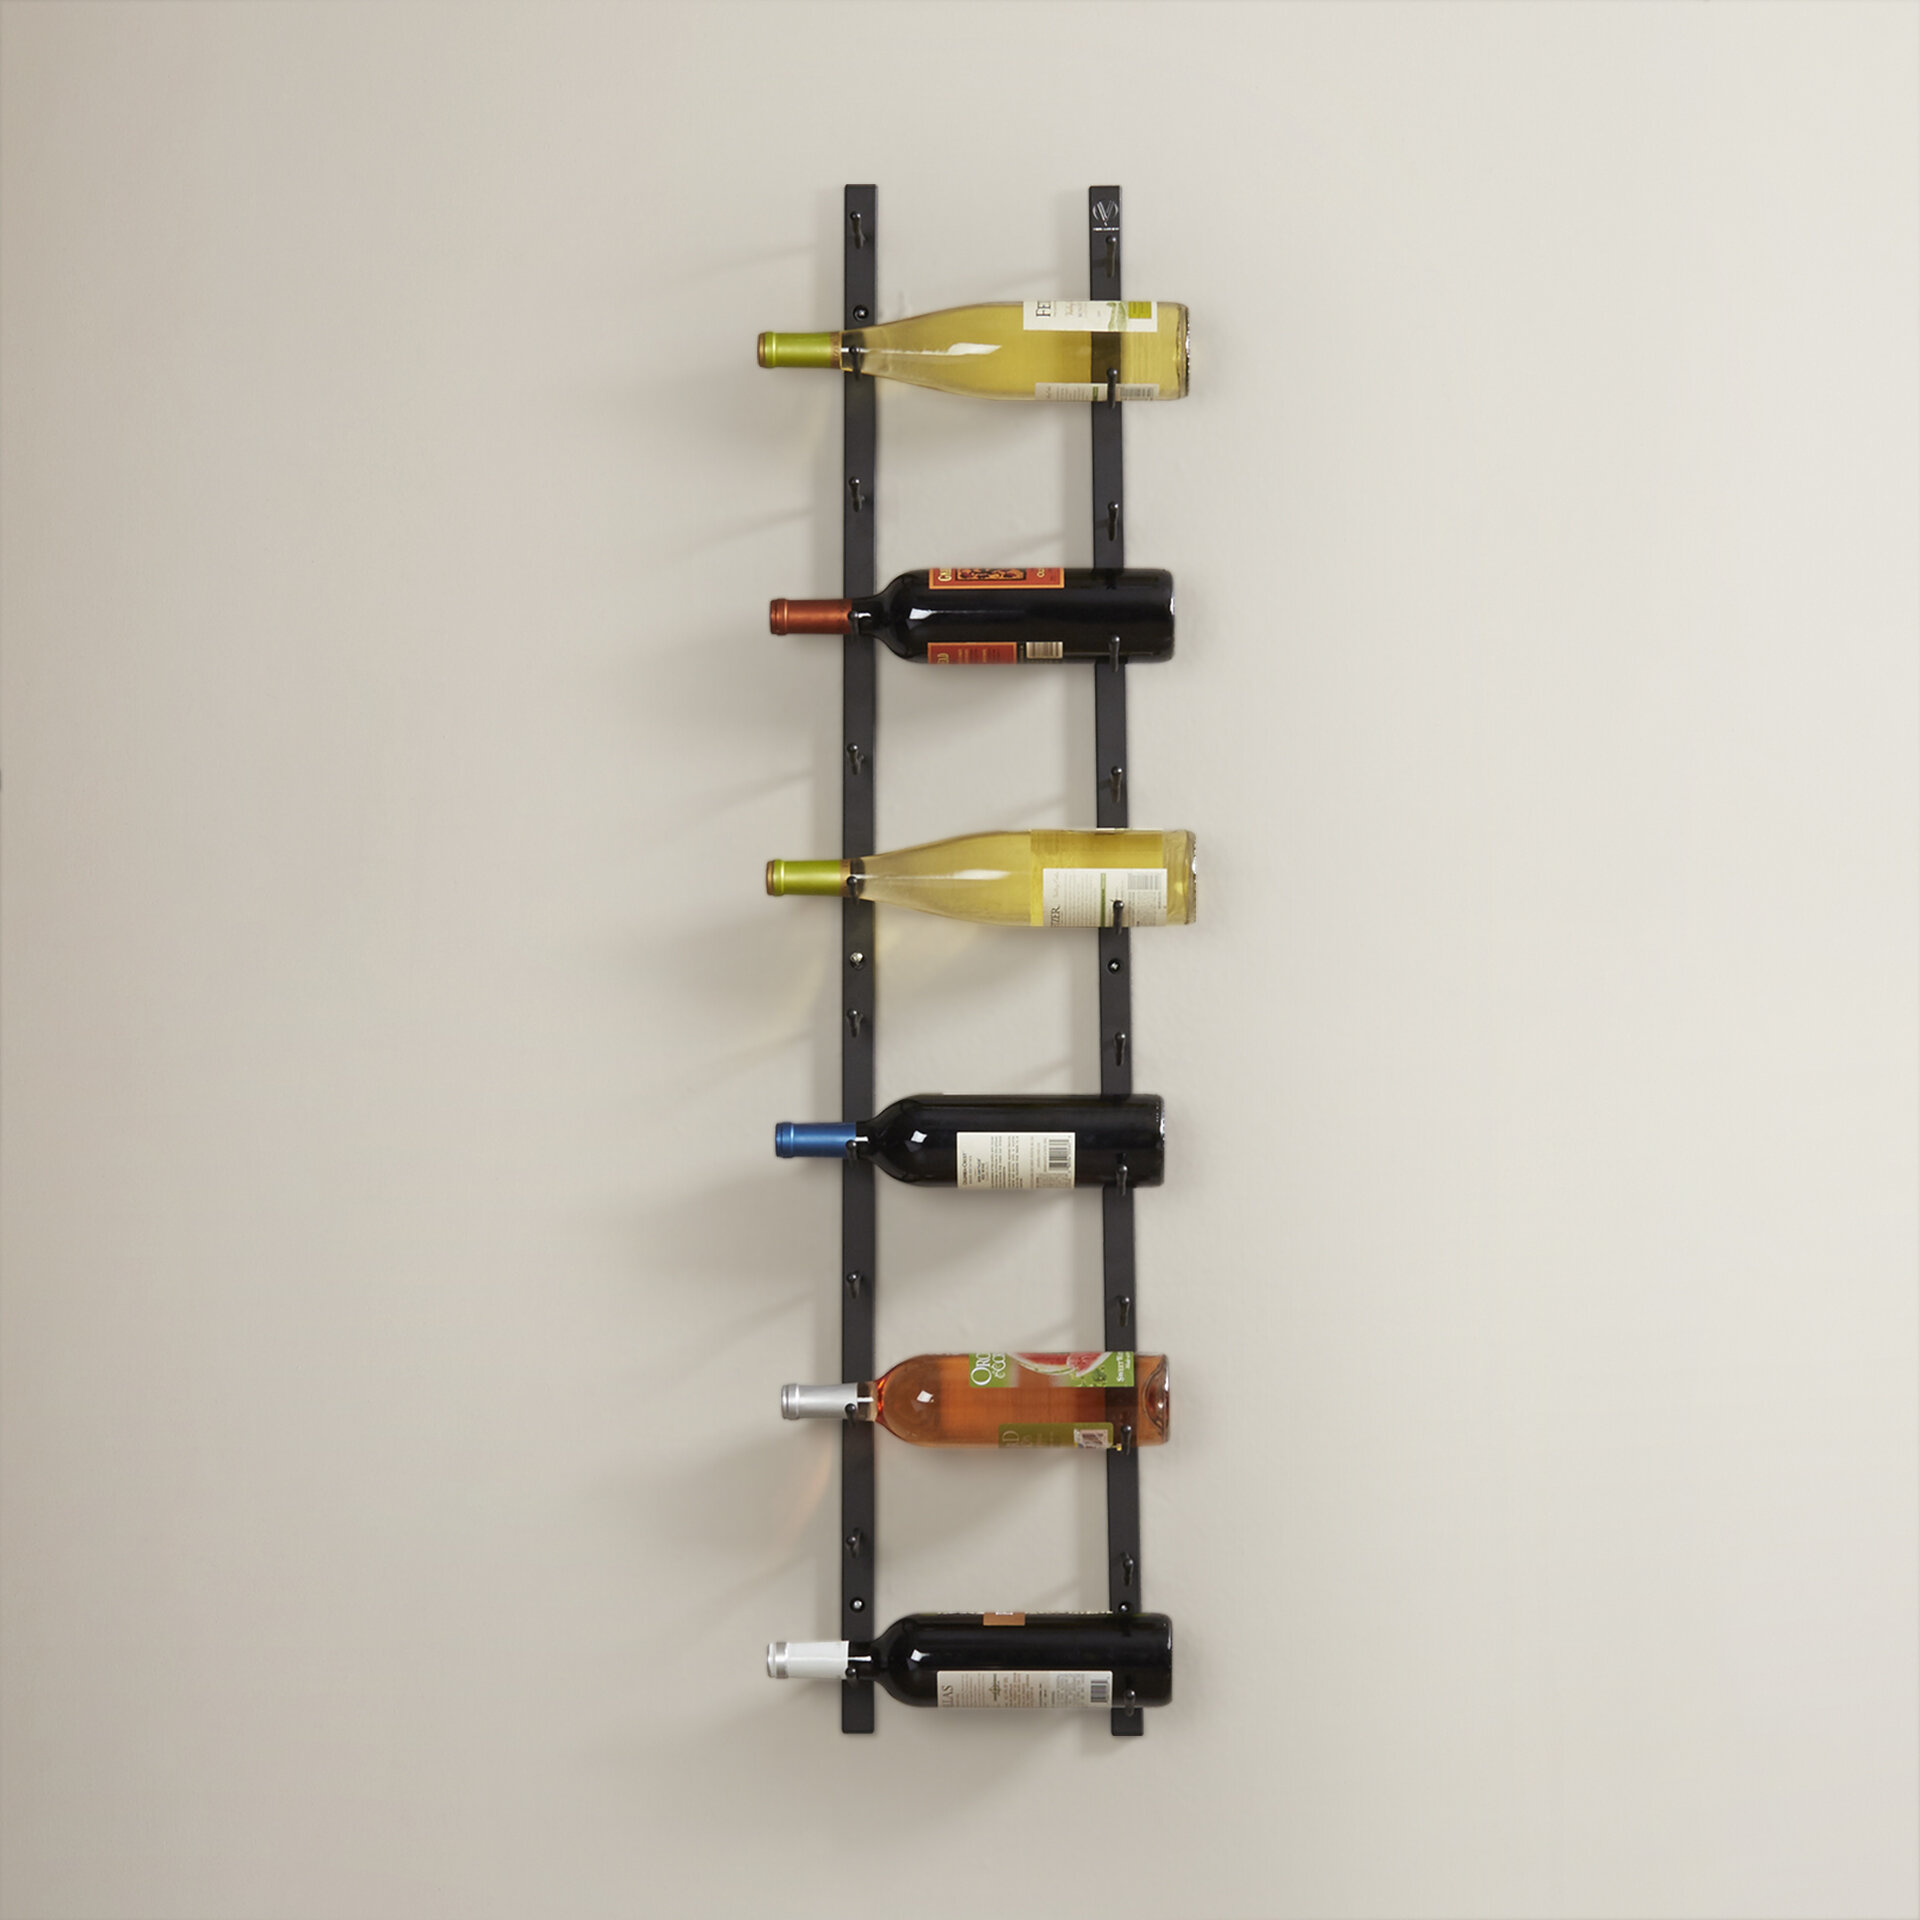 Indurial 12 Bottle Wall Mounted Wine Bottle Rack Reviews